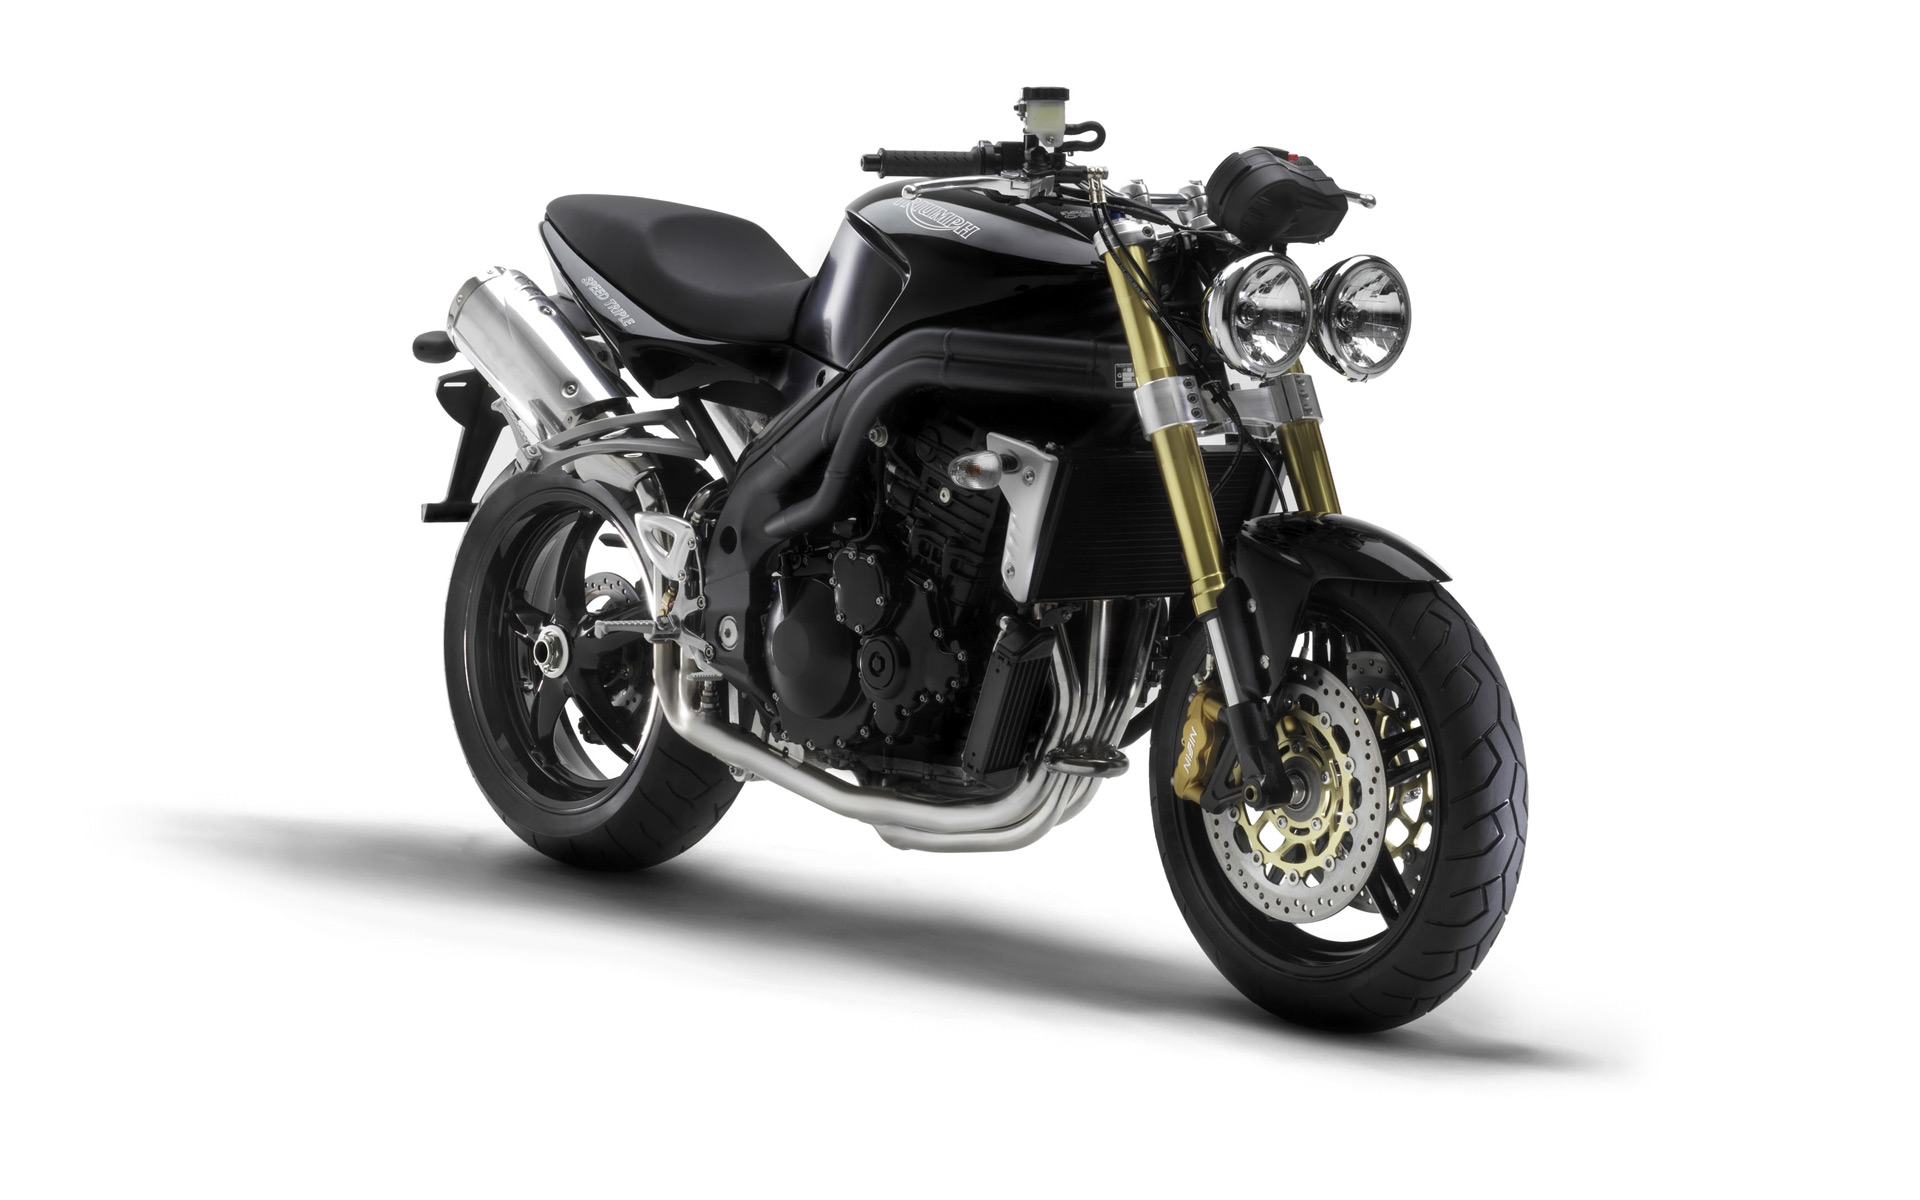 2010 TRIUMPH SPEED TRIPLE - Image #2